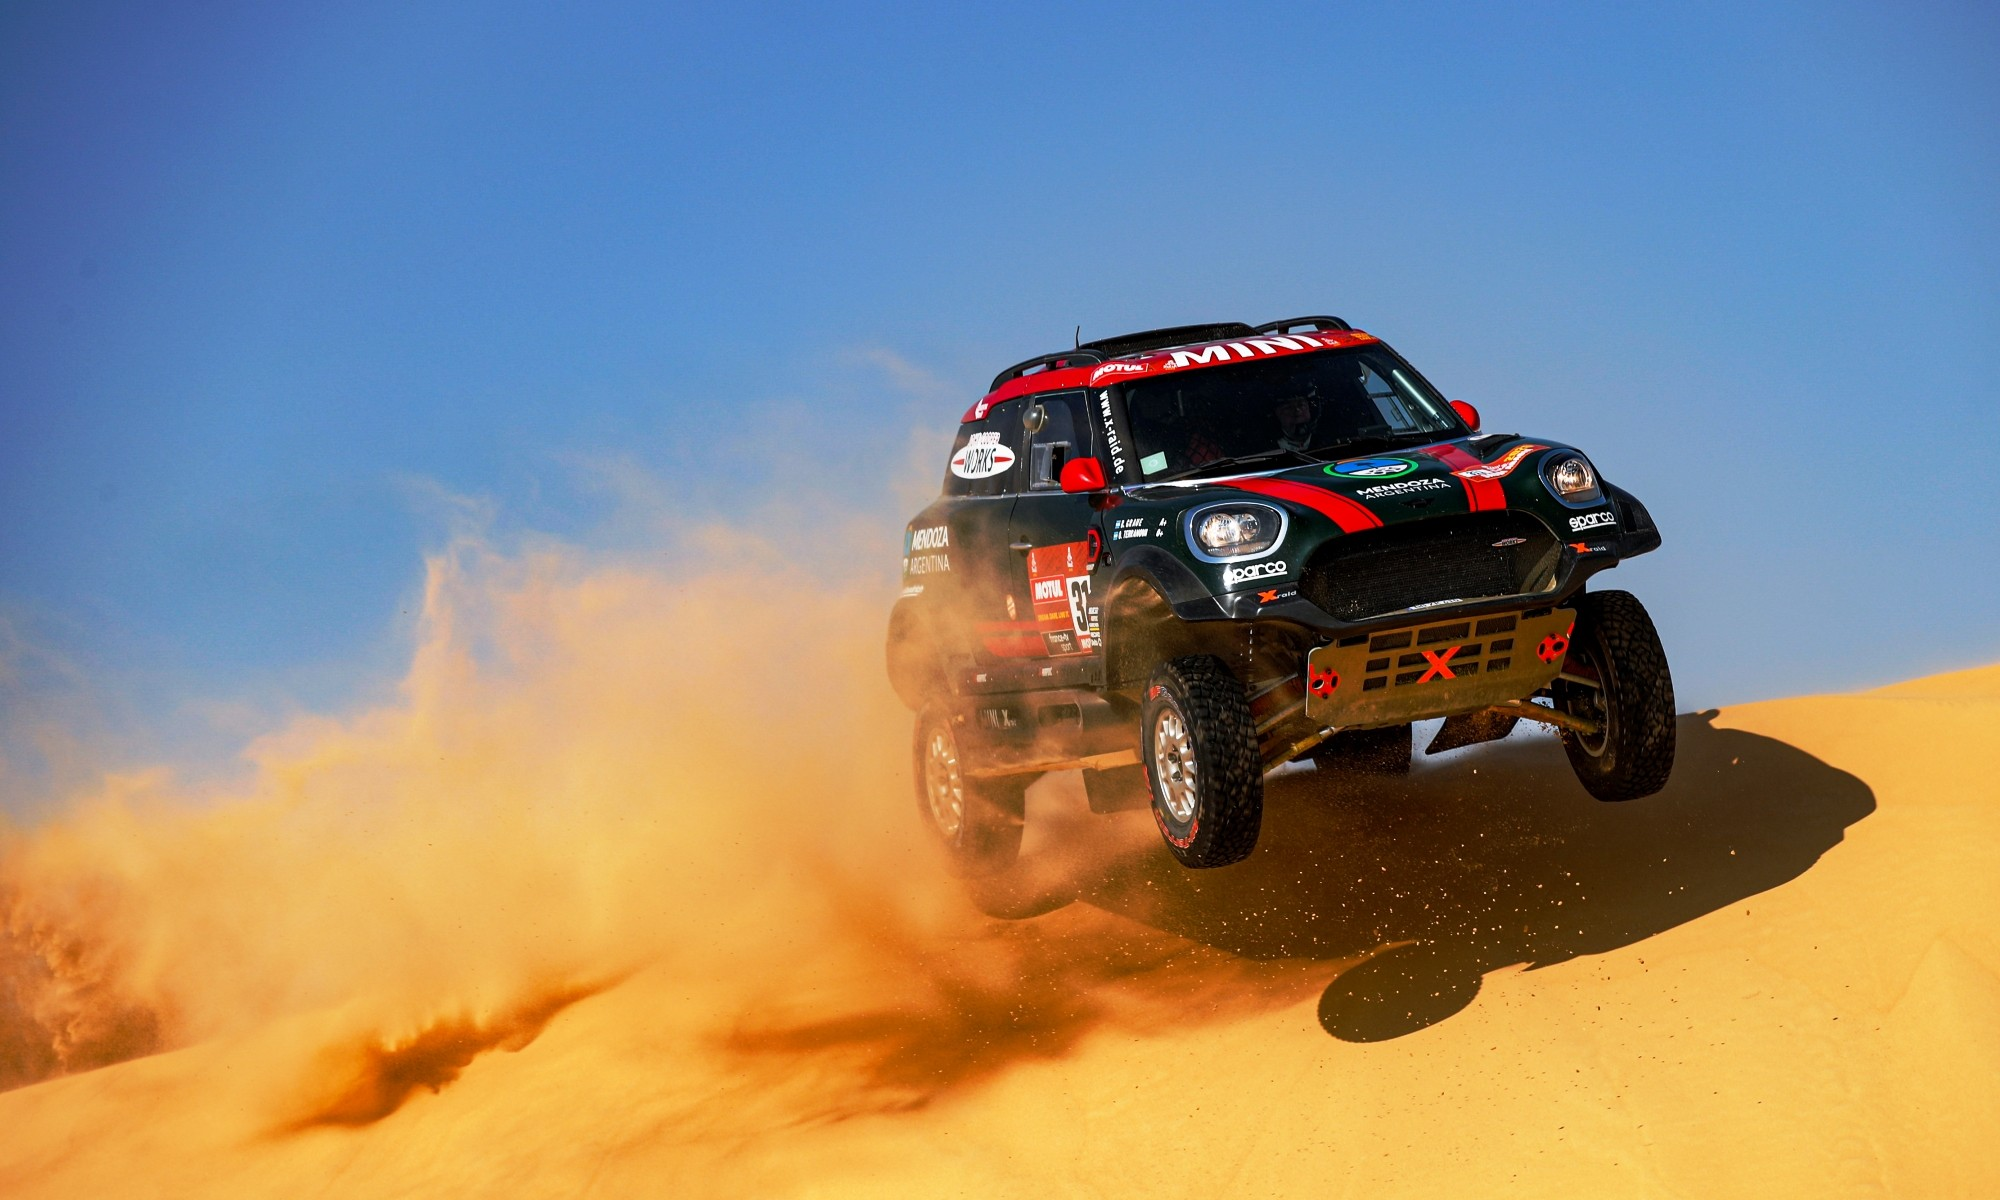 Orlando Terranova and Bernardo Graue in the John Cooper Works X-Raid Mini smash over a dune during Stage 10 between Haradh and Shubaytah (Photo by Florent Gooden for DPPI)